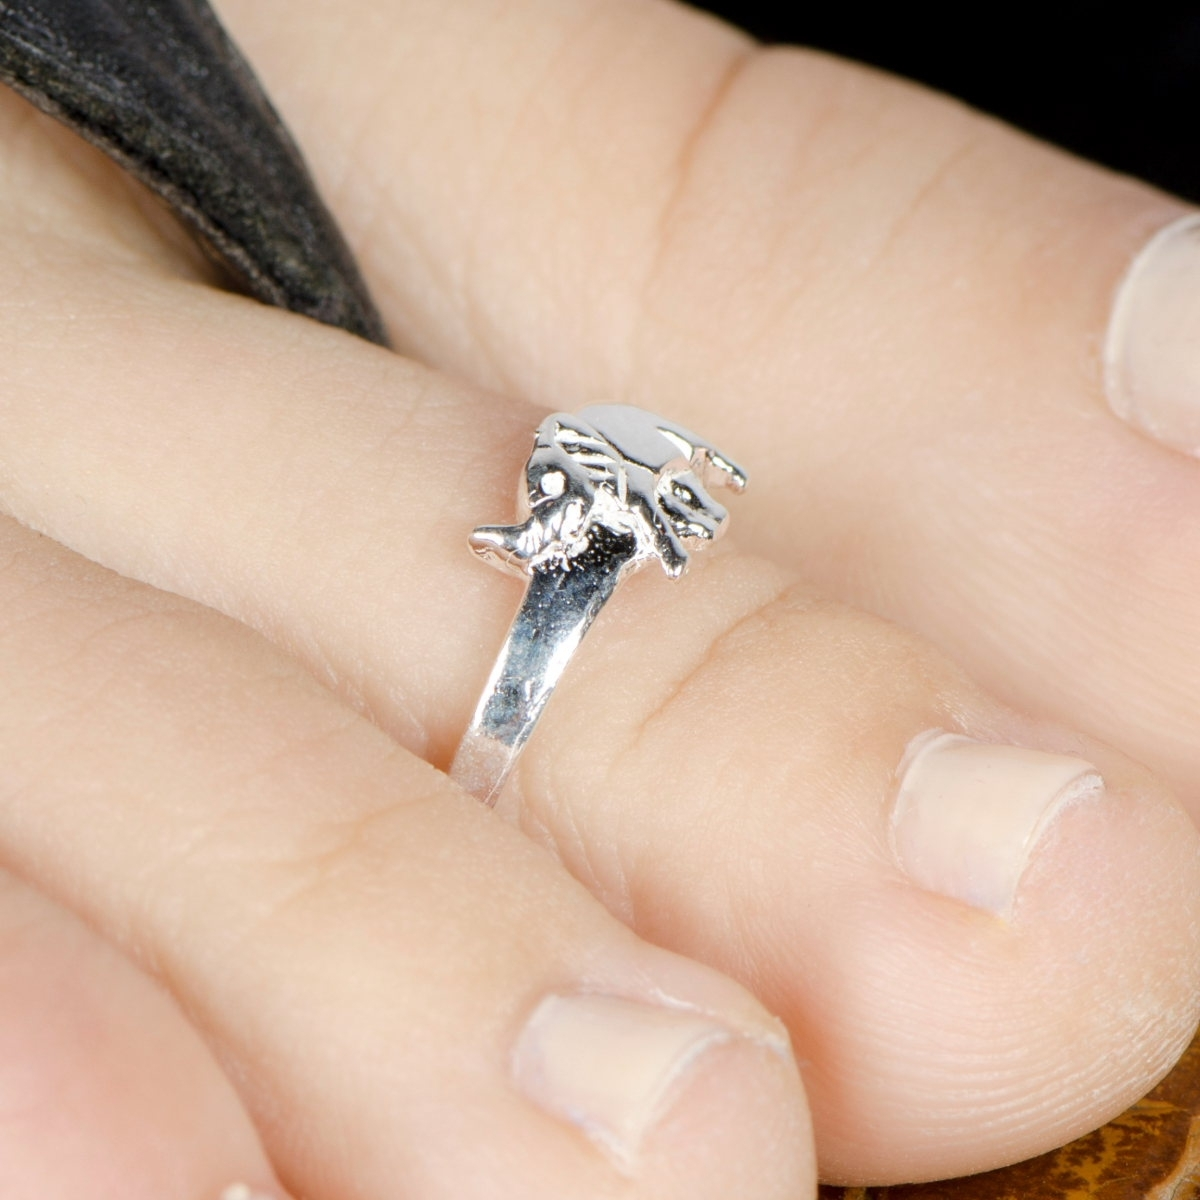 Quiet Wedding: Elephant Diamond Wedding Ring With Regard To Latest Toe Rings With Diamonds (Gallery 4 of 15)